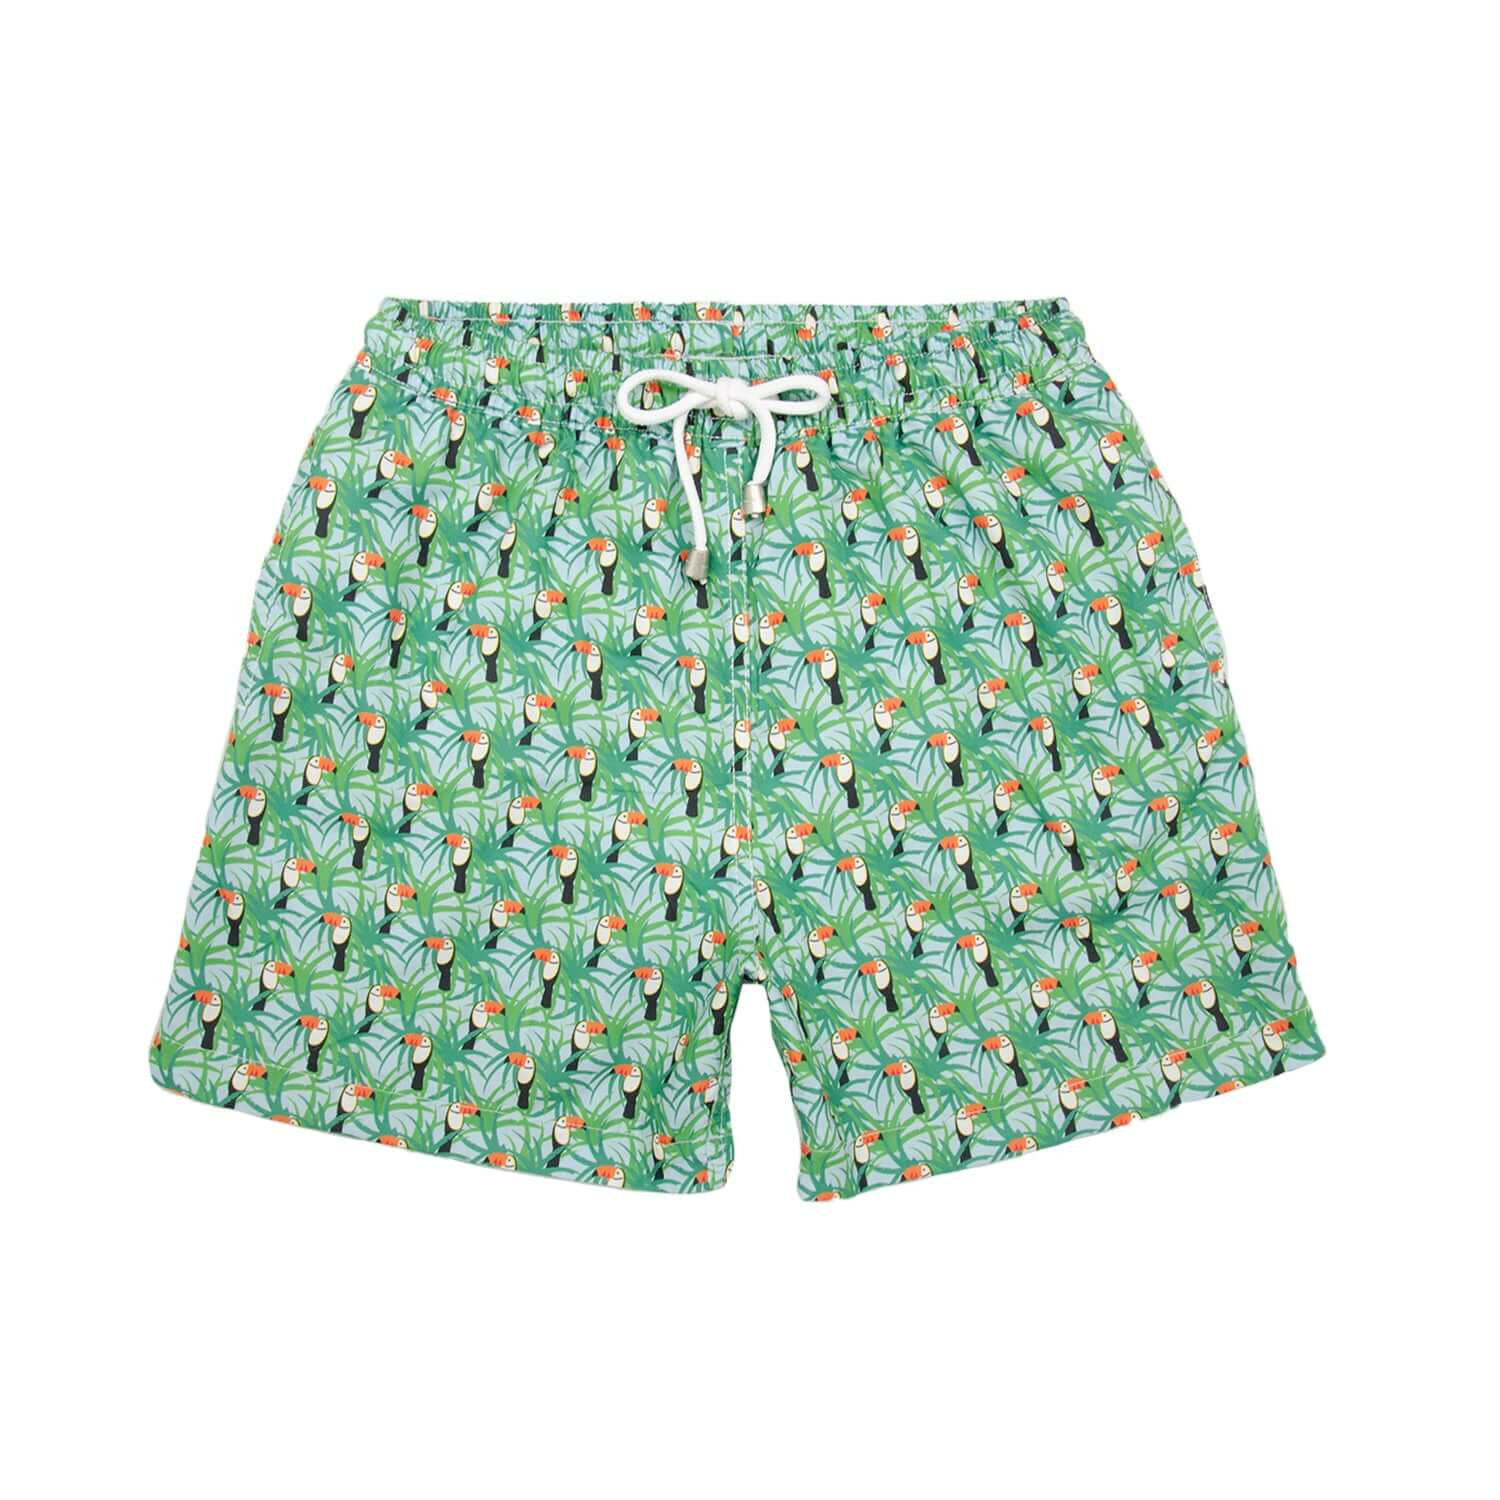 TUCAN GREEN KIDS - Clorofila Sea Wear